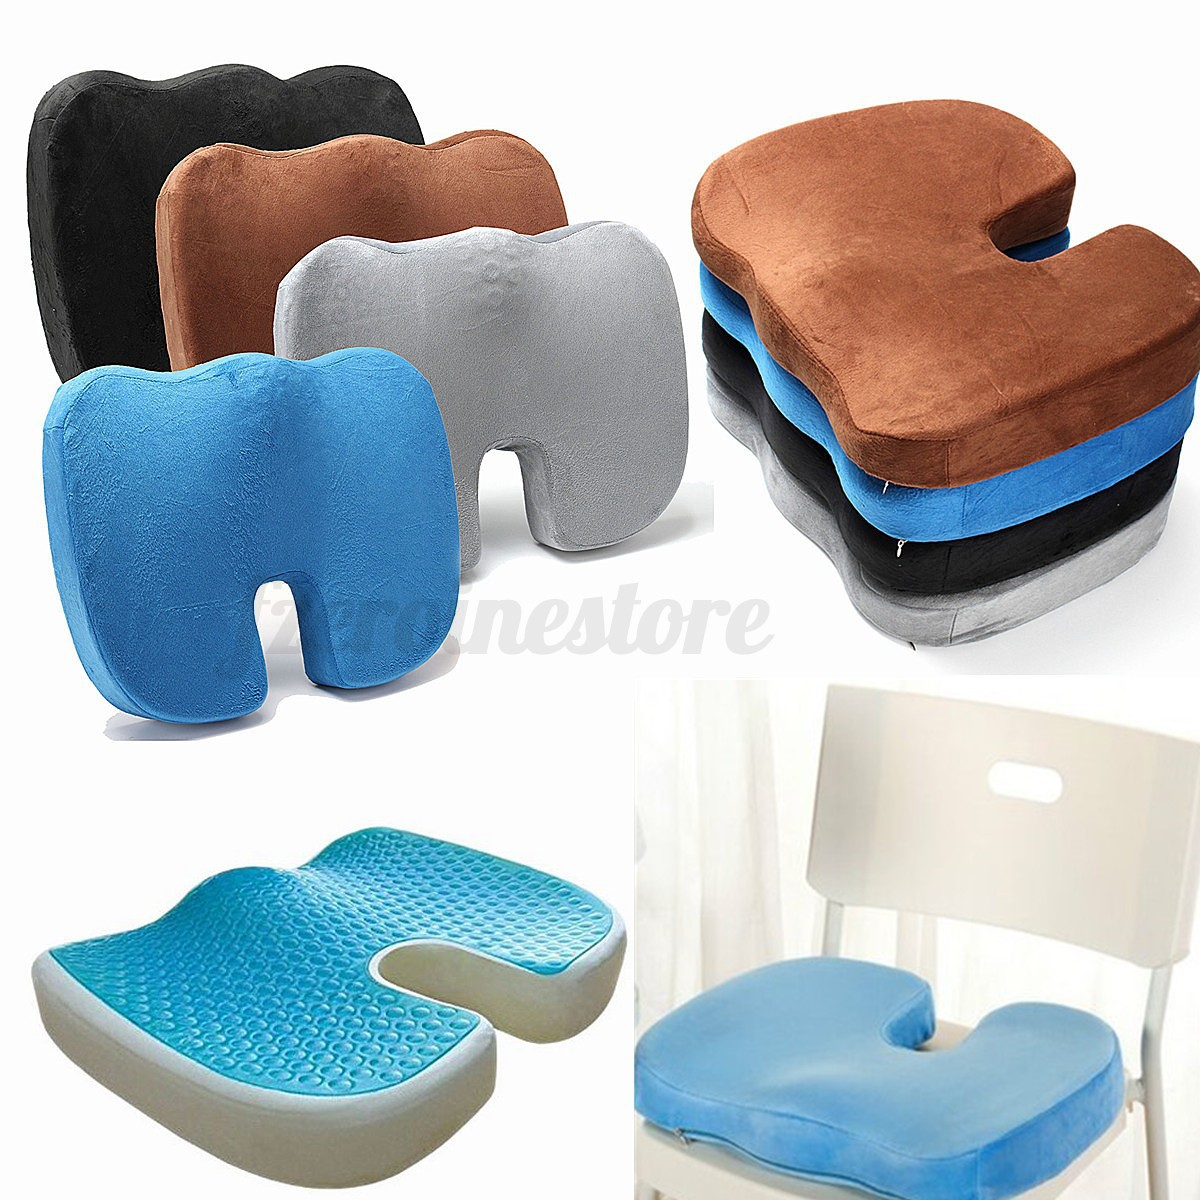 gel cushion for chairs fan back chair coccyx orthopedic enhanced comfort memory foam seat